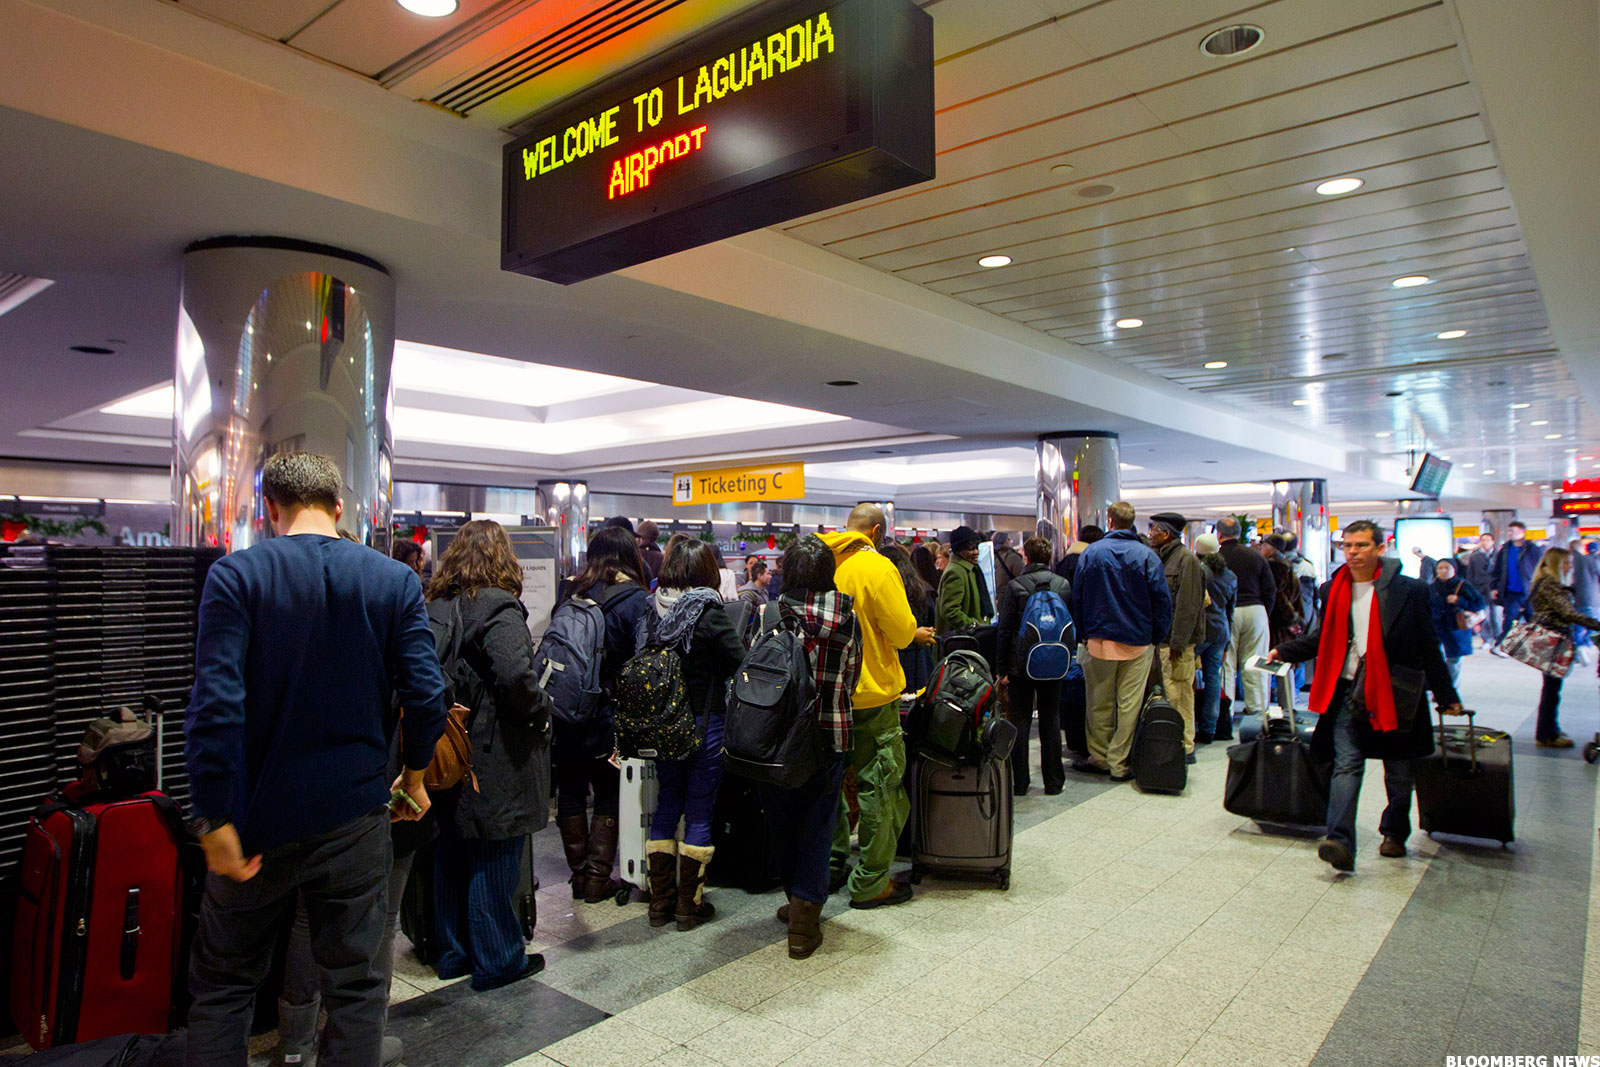 Major U.S. Airlines Hit by Outages - Stocks Rise as FAA Says Issue Is Resolved